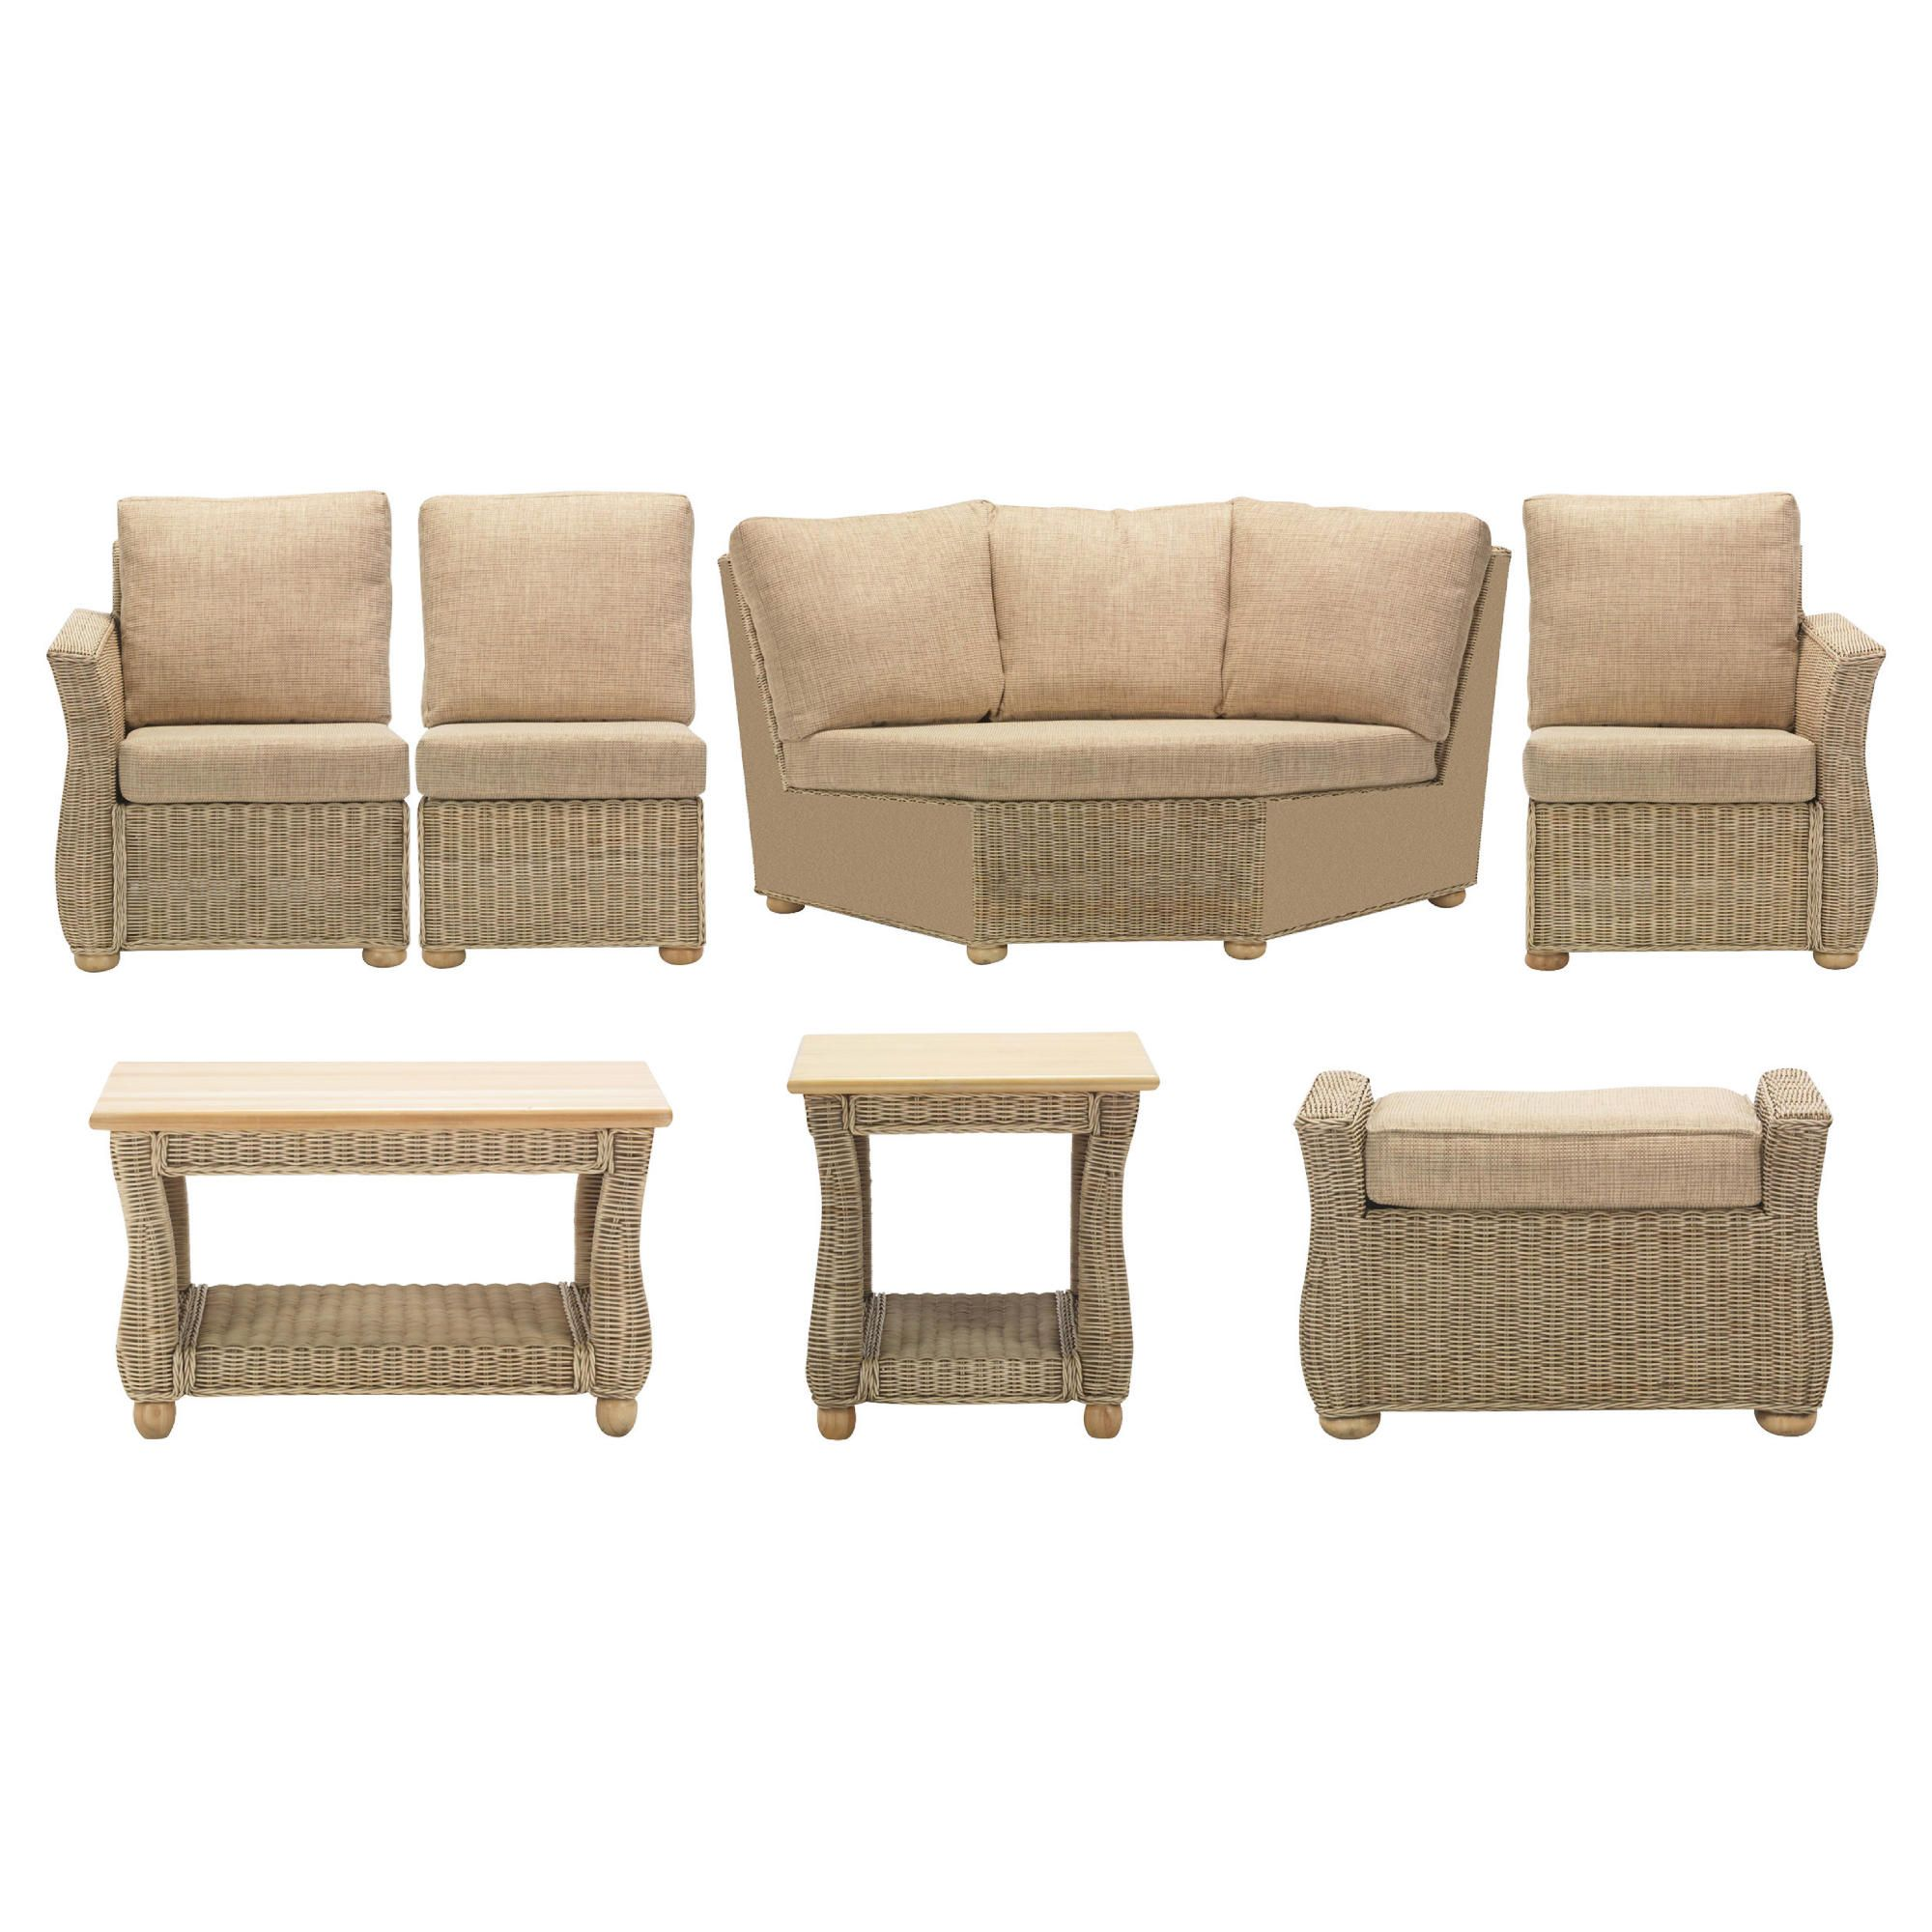 Corsica 7 Piece Suite Conservatory Set (Left, Right, Armless, Corner, Coffee table, Lamp table & Footstool) at Tesco Direct